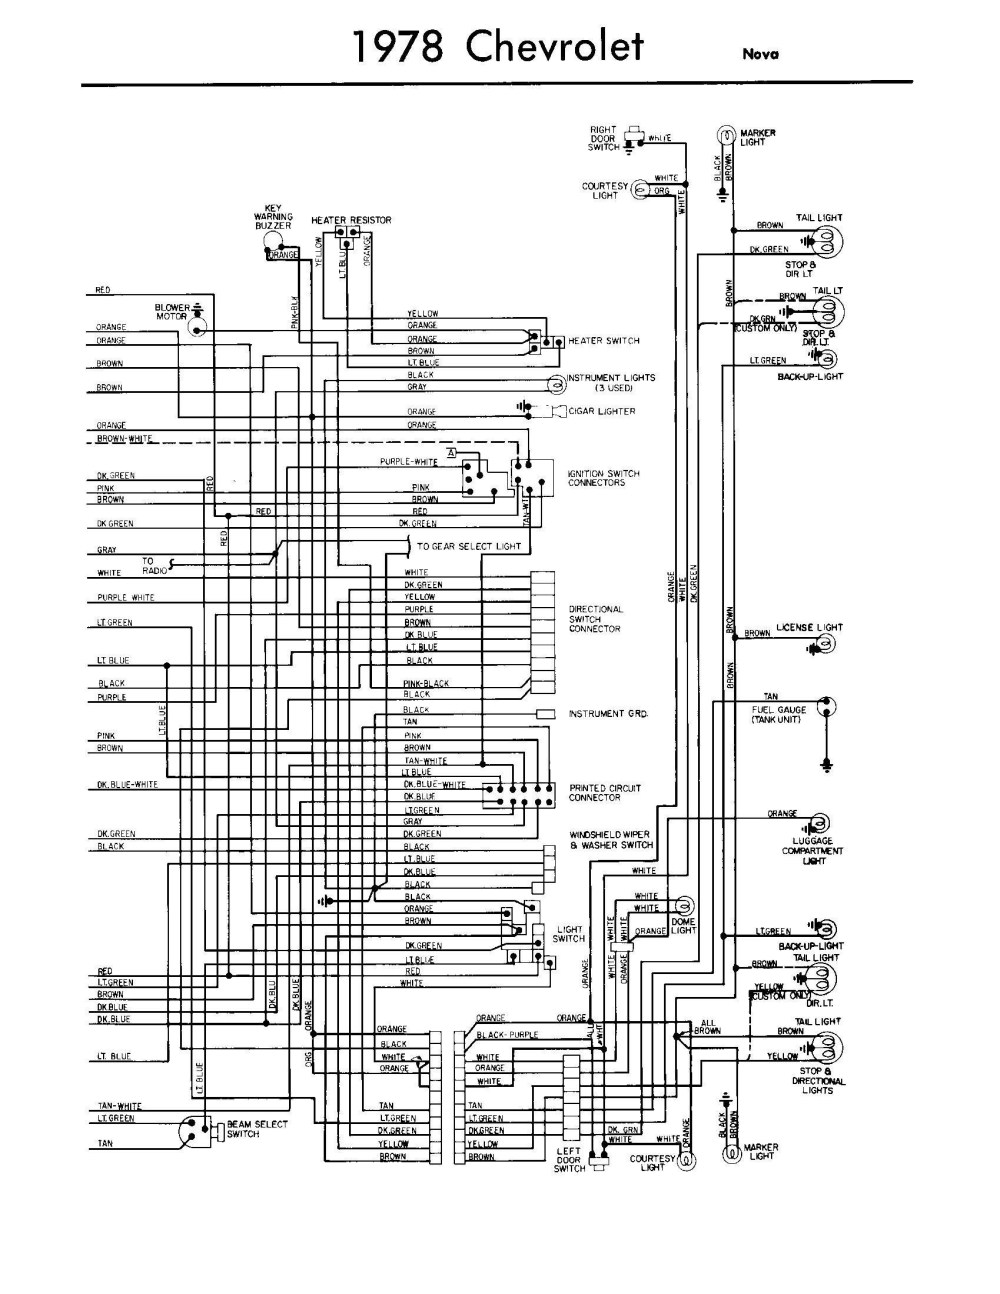 medium resolution of 73 caprice wiring diagram data diagram schematic73 caprice wiring diagram wiring diagrams bib 73 caprice wiring